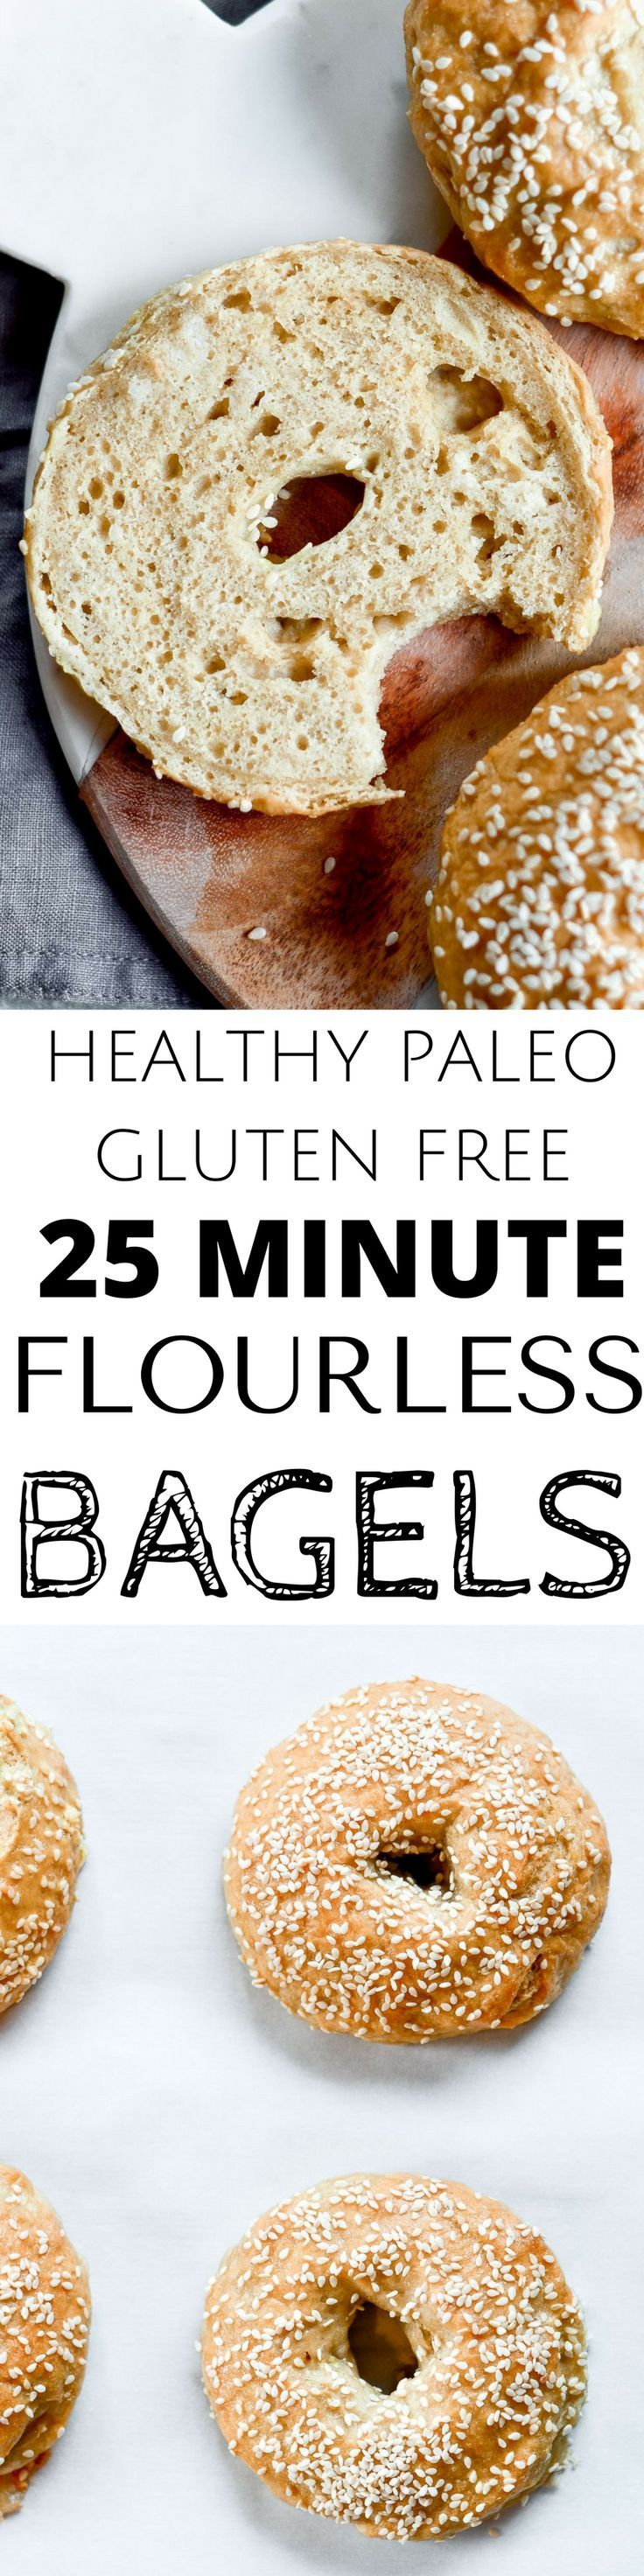 Bagels that are gluten free and paleo! Grain free, nut free, no yeast, and taste and look like the real thing! You wont even know they don't have grains!!